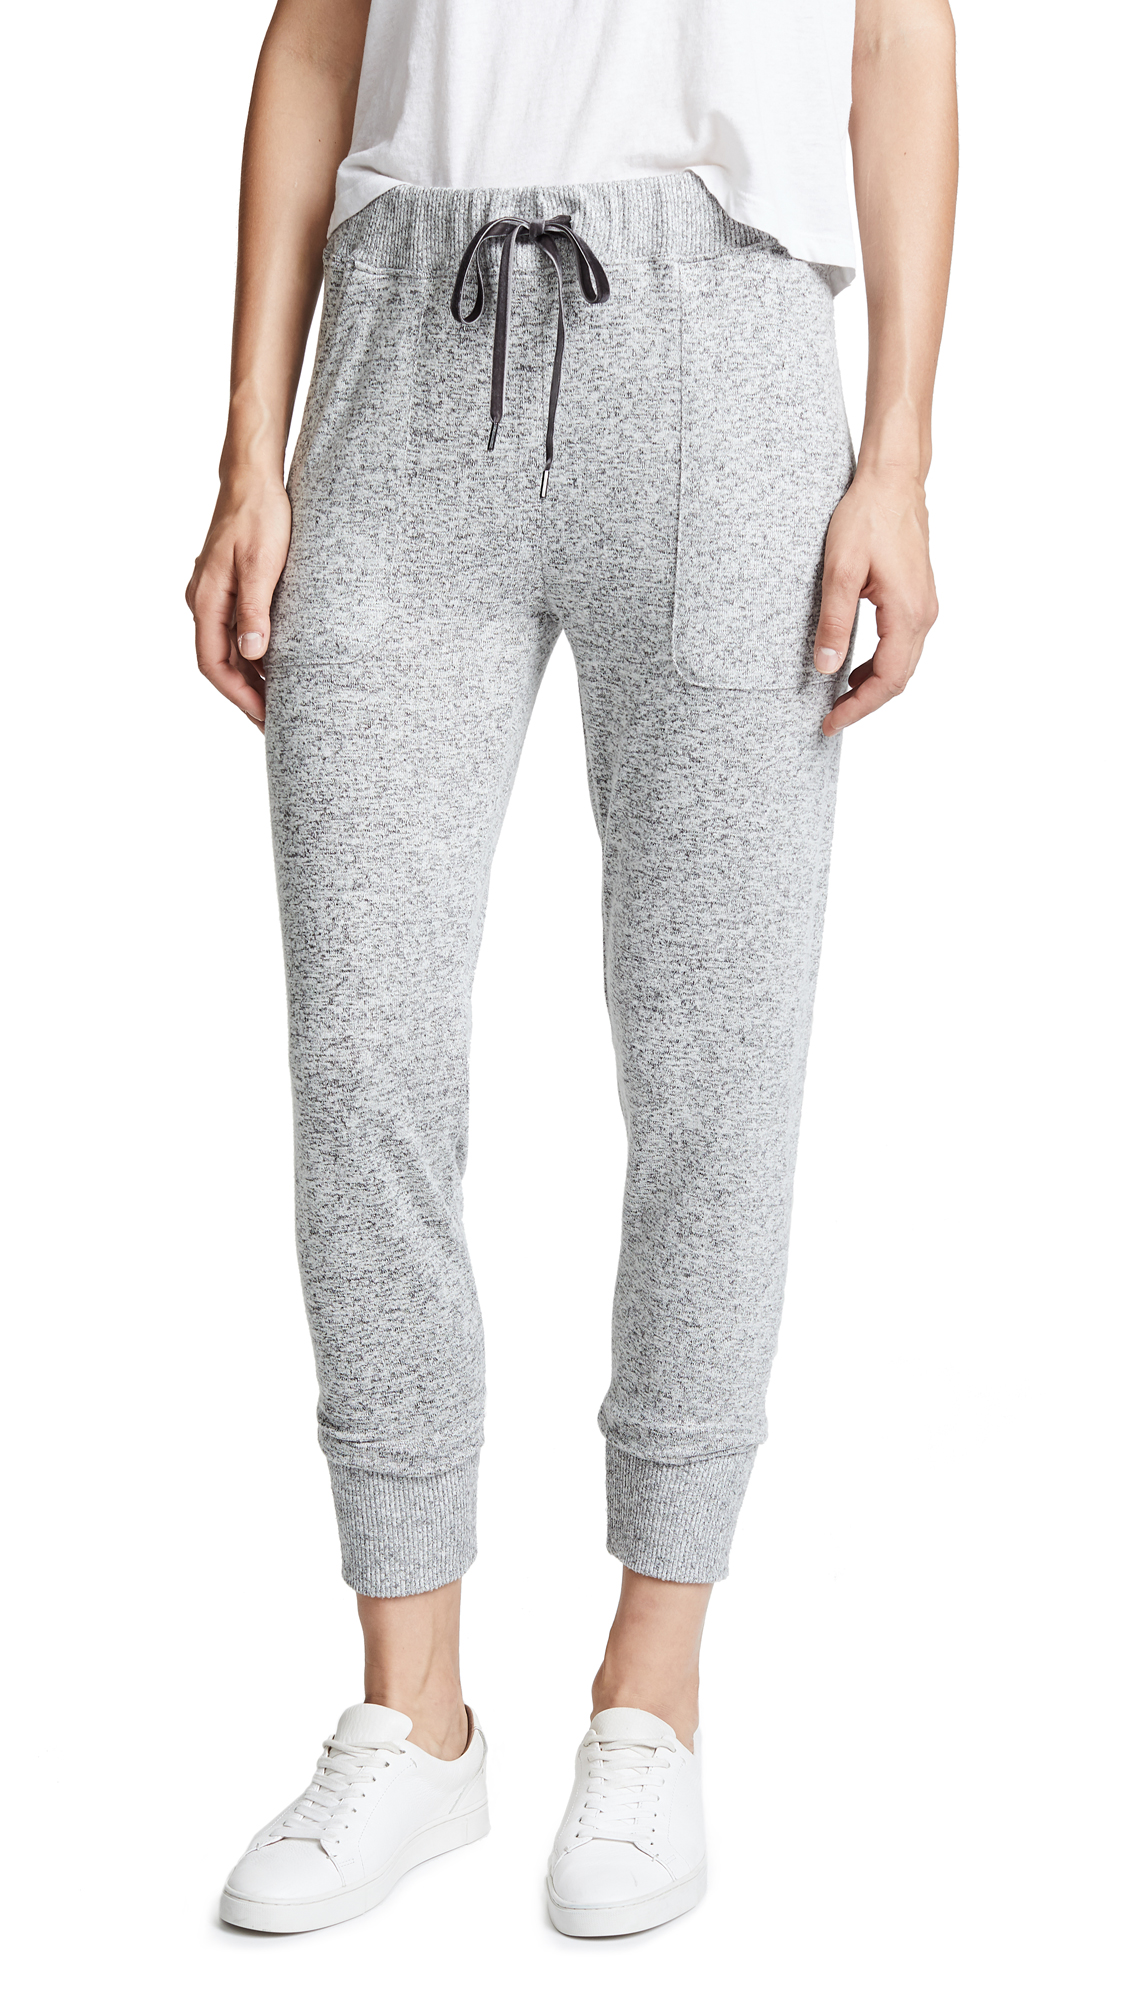 Devon Sweatpants